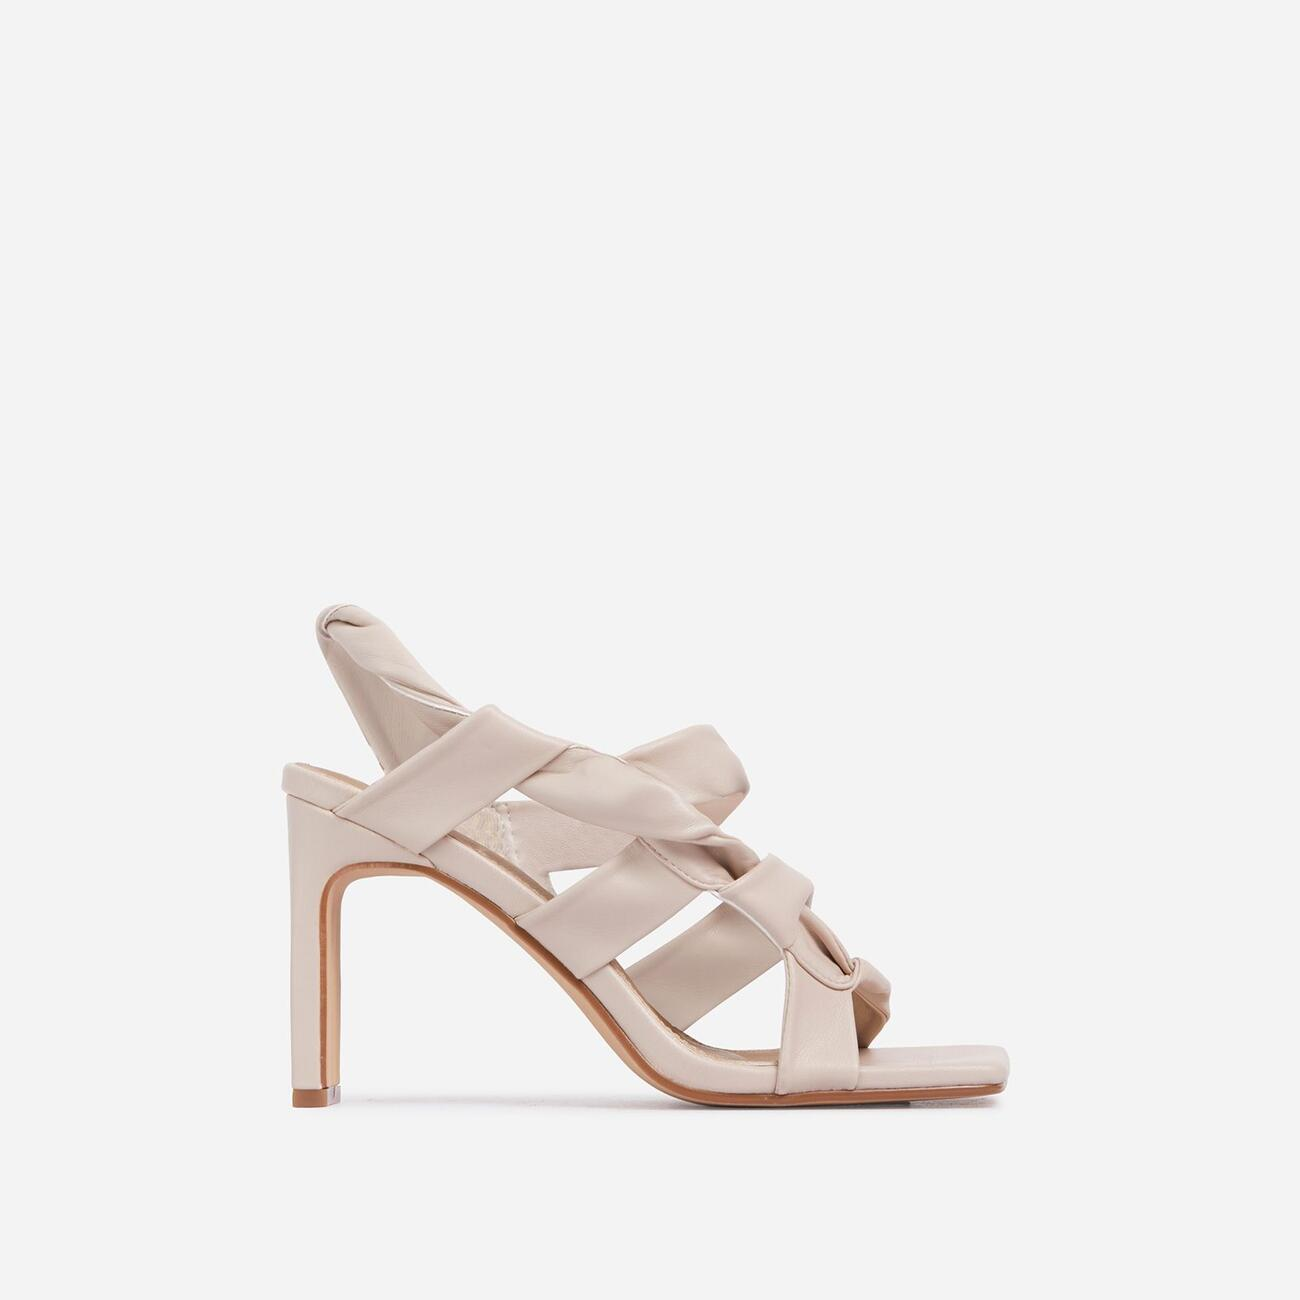 Ripple Strappy Caged Square Toe Heel Mule In Nude Faux Leather Image 1